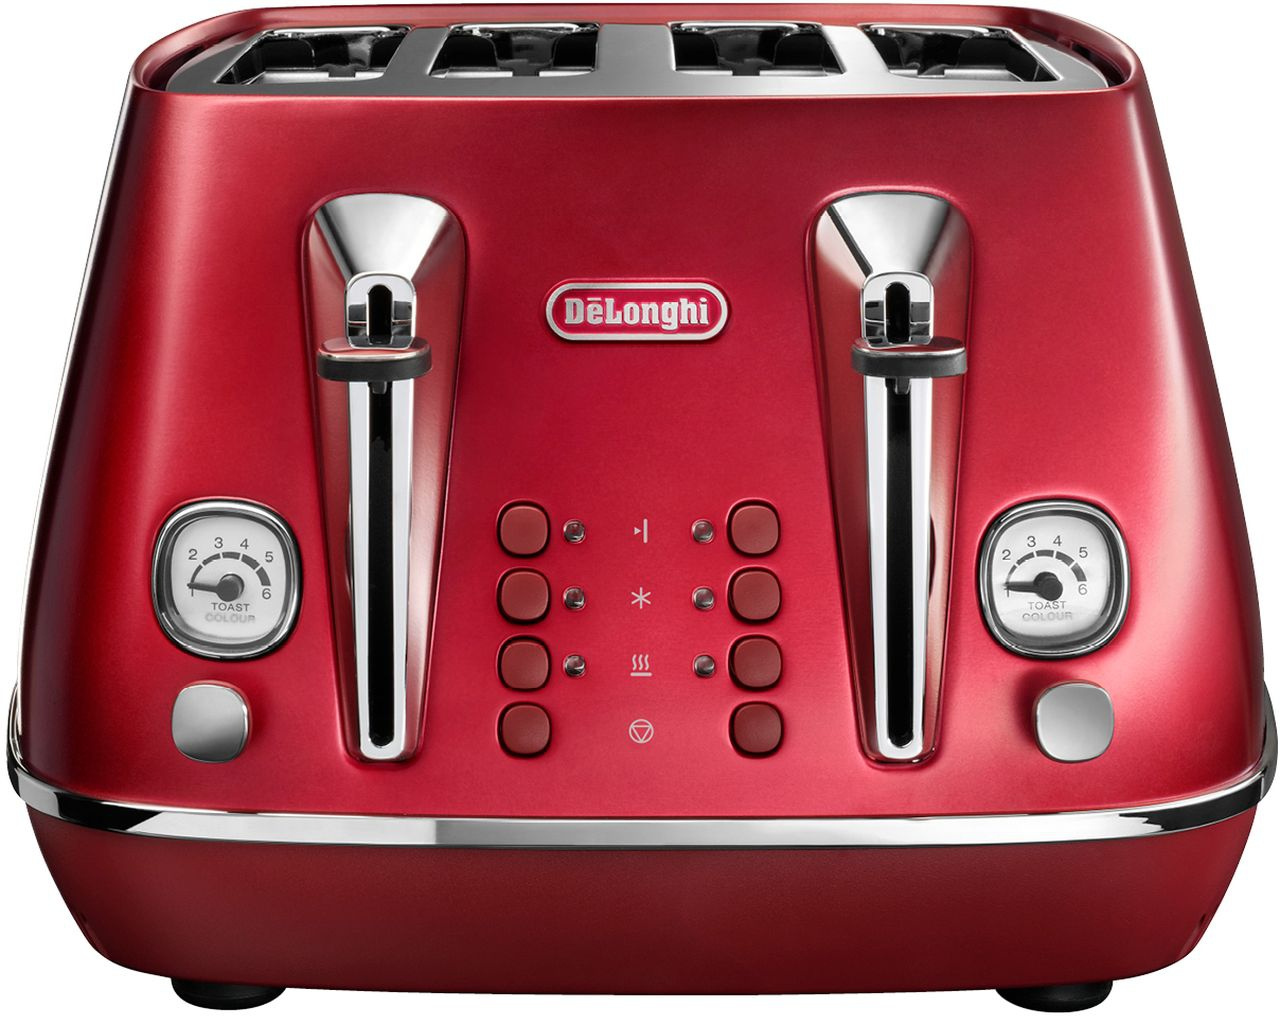 Delonghi - Distinta Flair 4 Slice Toaster - Red